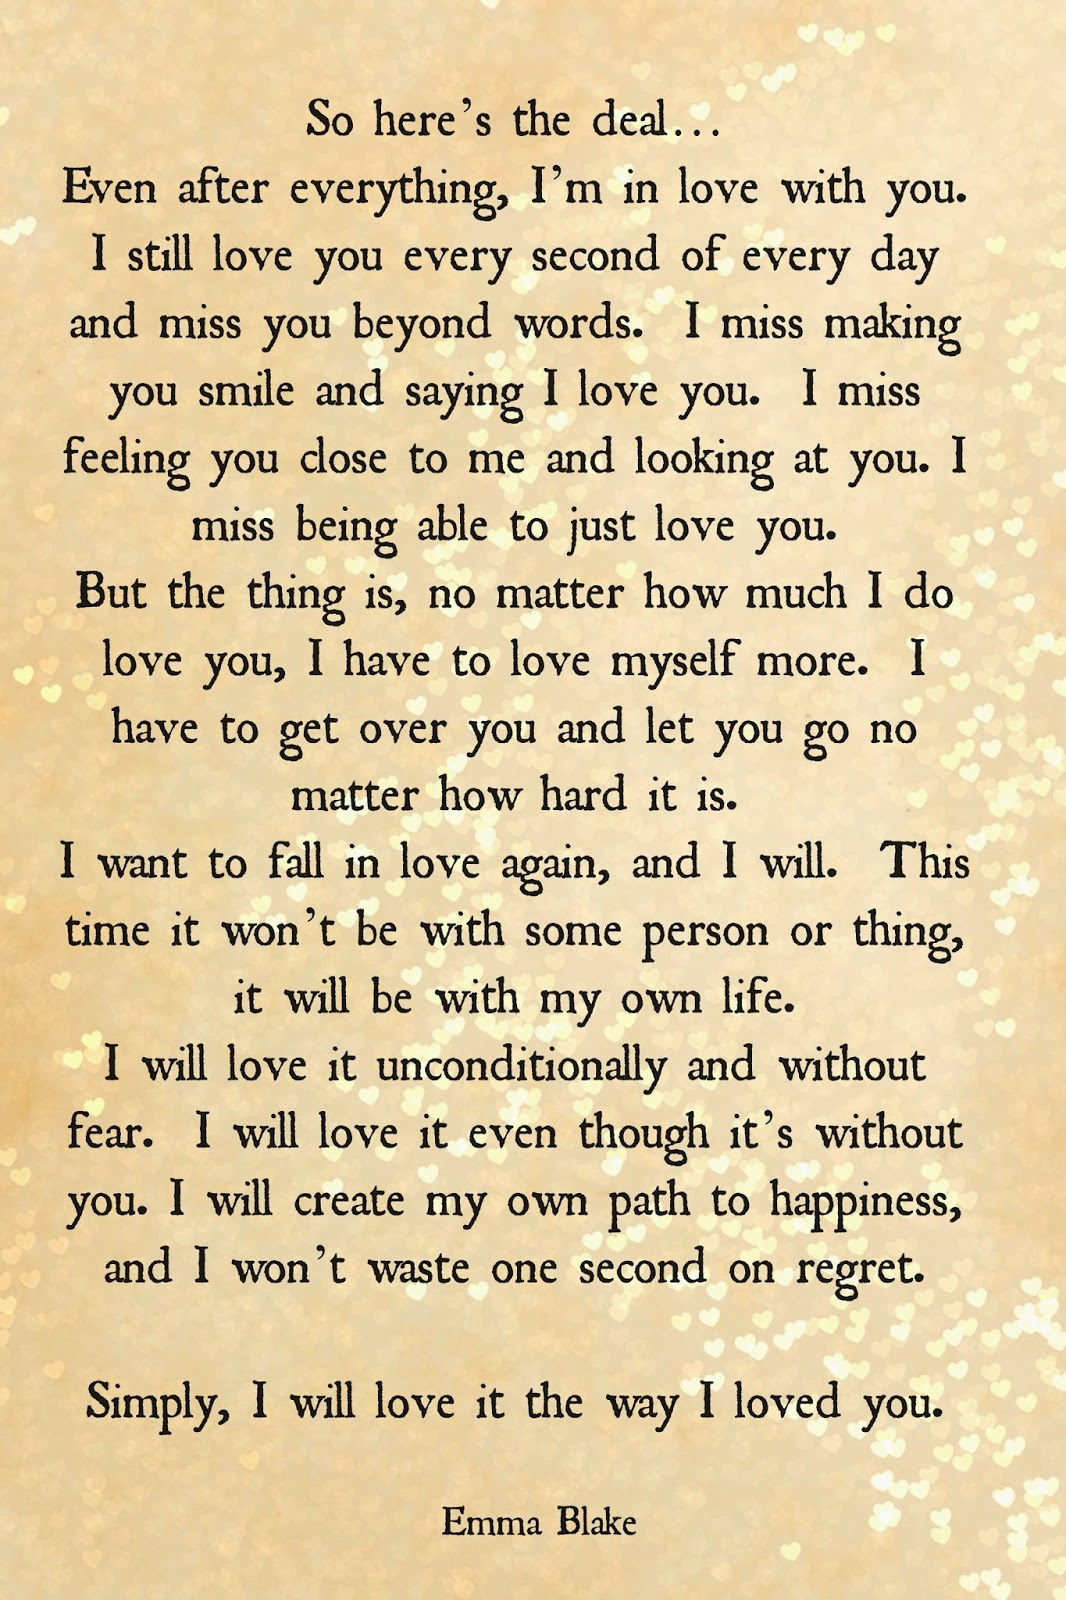 Sad Quotes About Love: Long Distance Love Poems For Him From The Heart